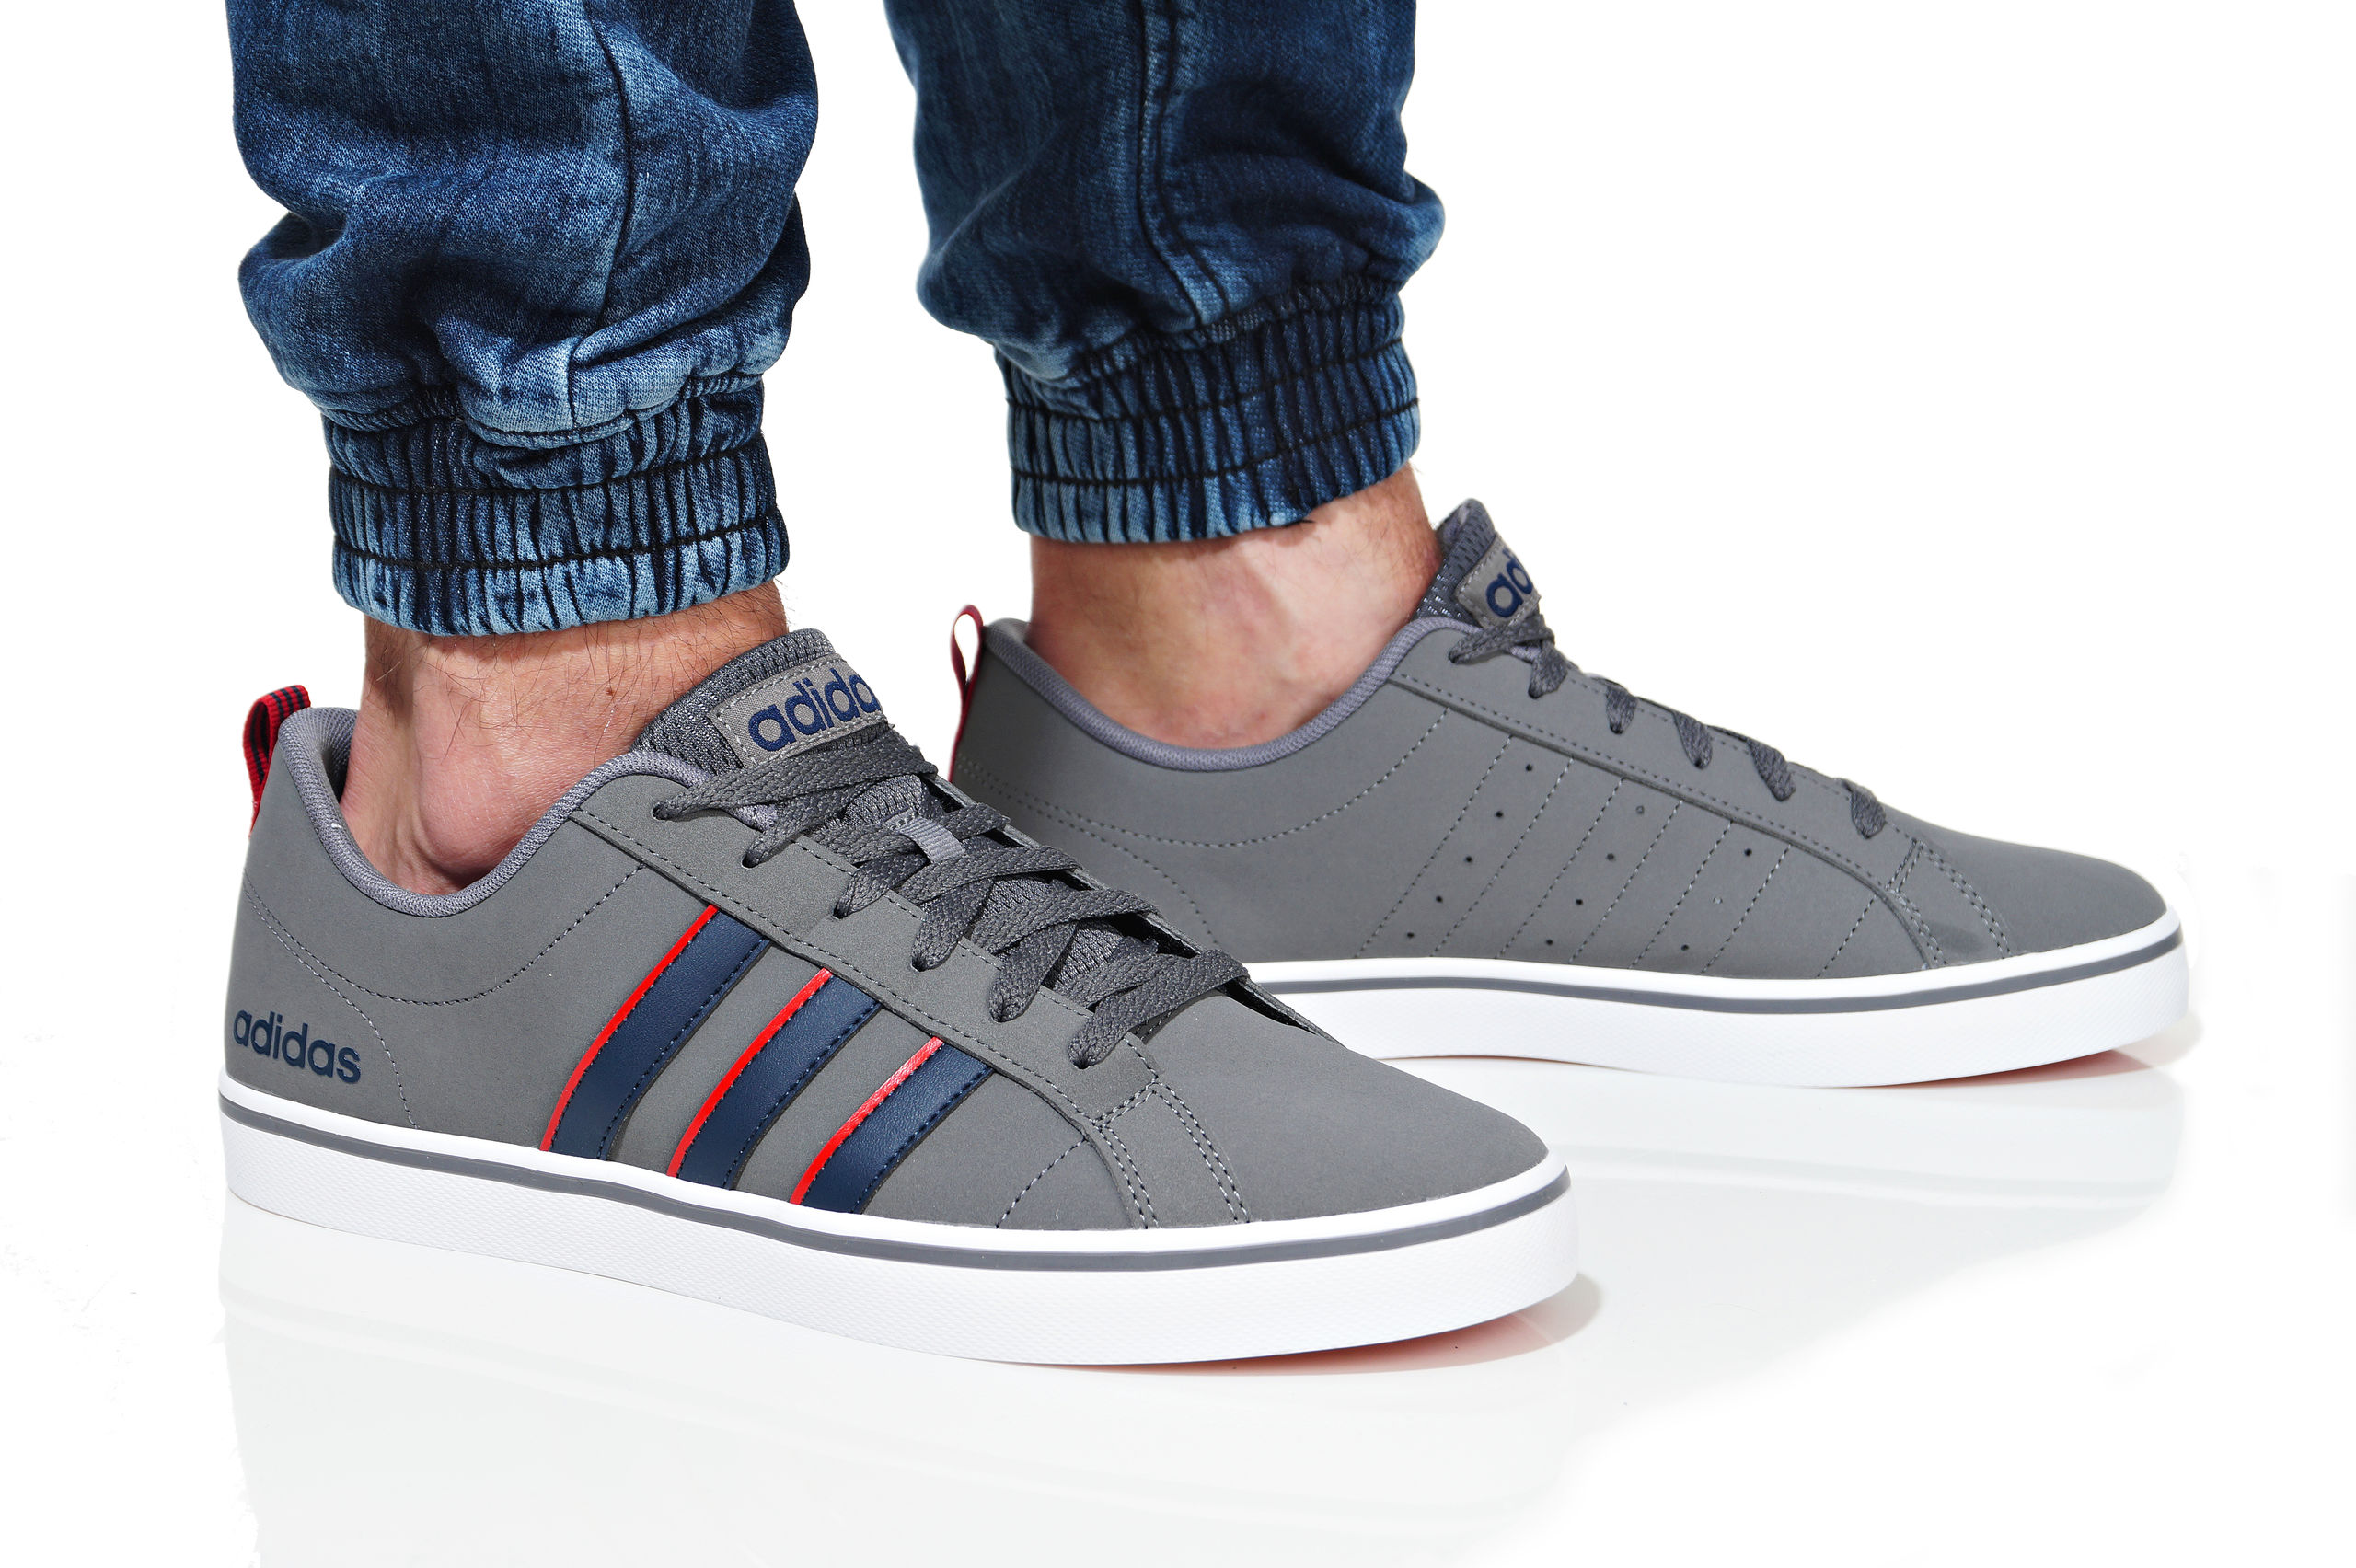 BUTY ADIDAS VS PACE DB0151 SZARE R. 45 13 7197910643